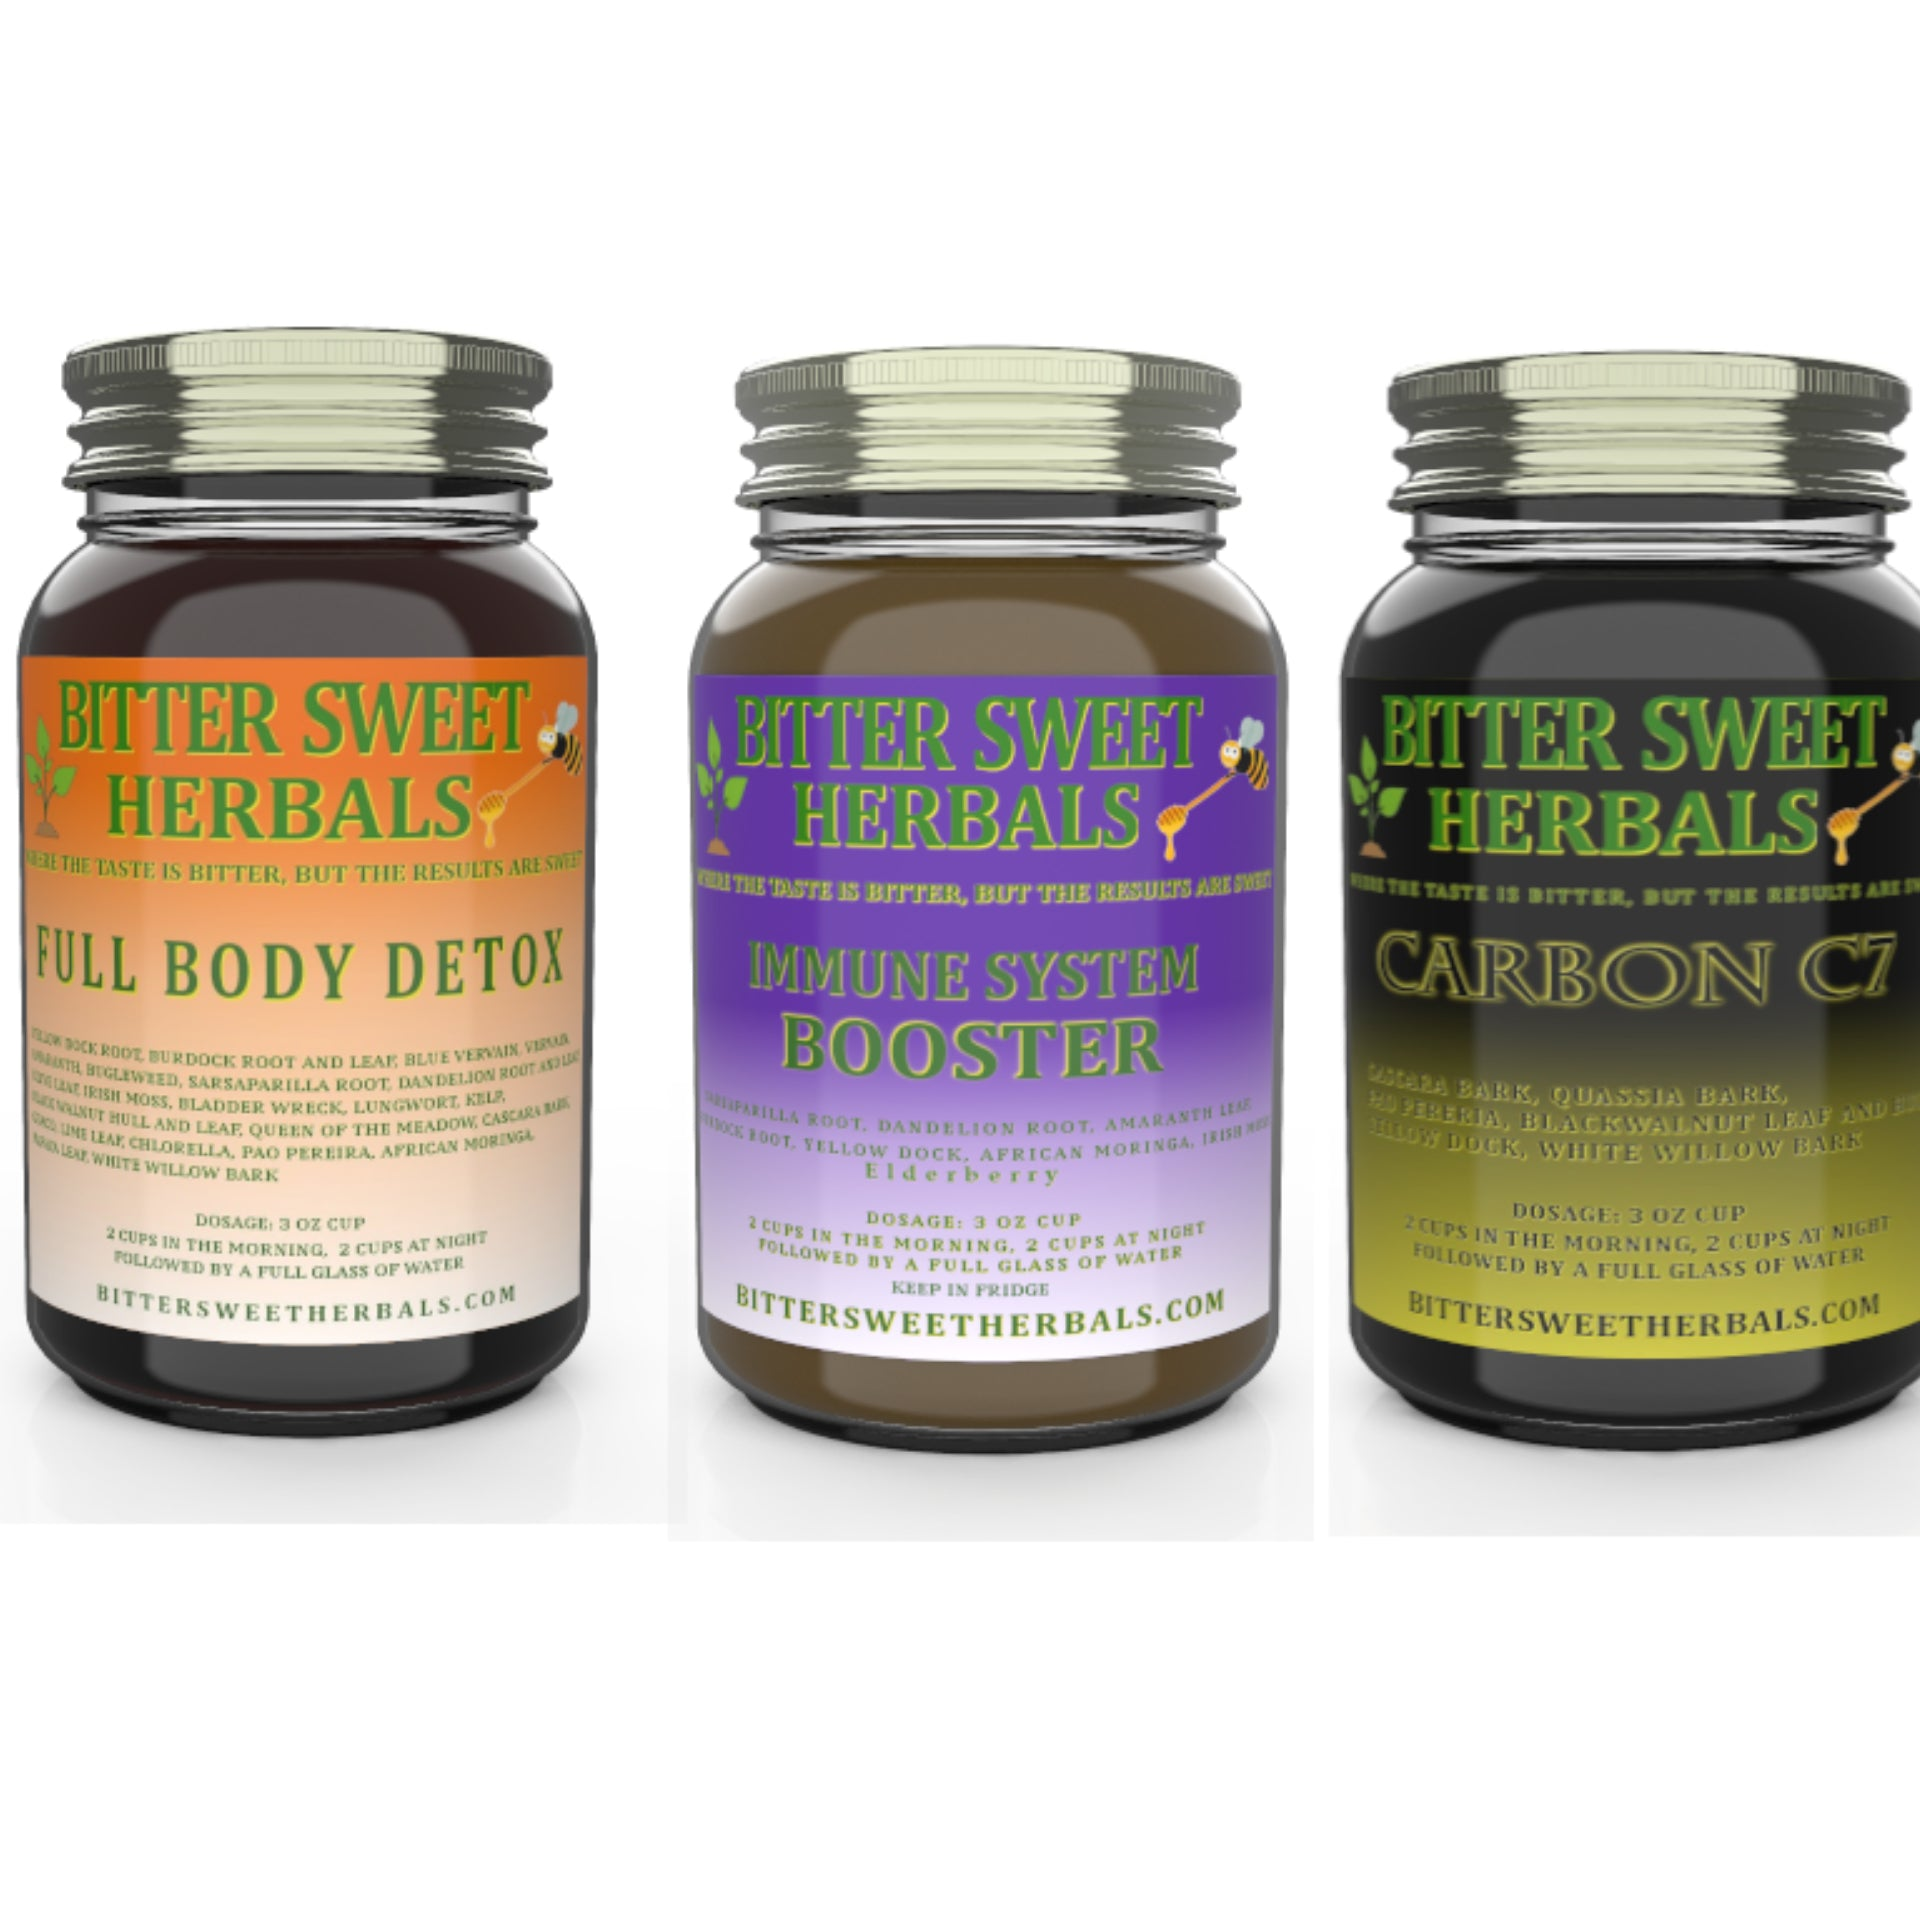 Bundle Pack - Full Body Detox + Immune System Booster + Carbon C7